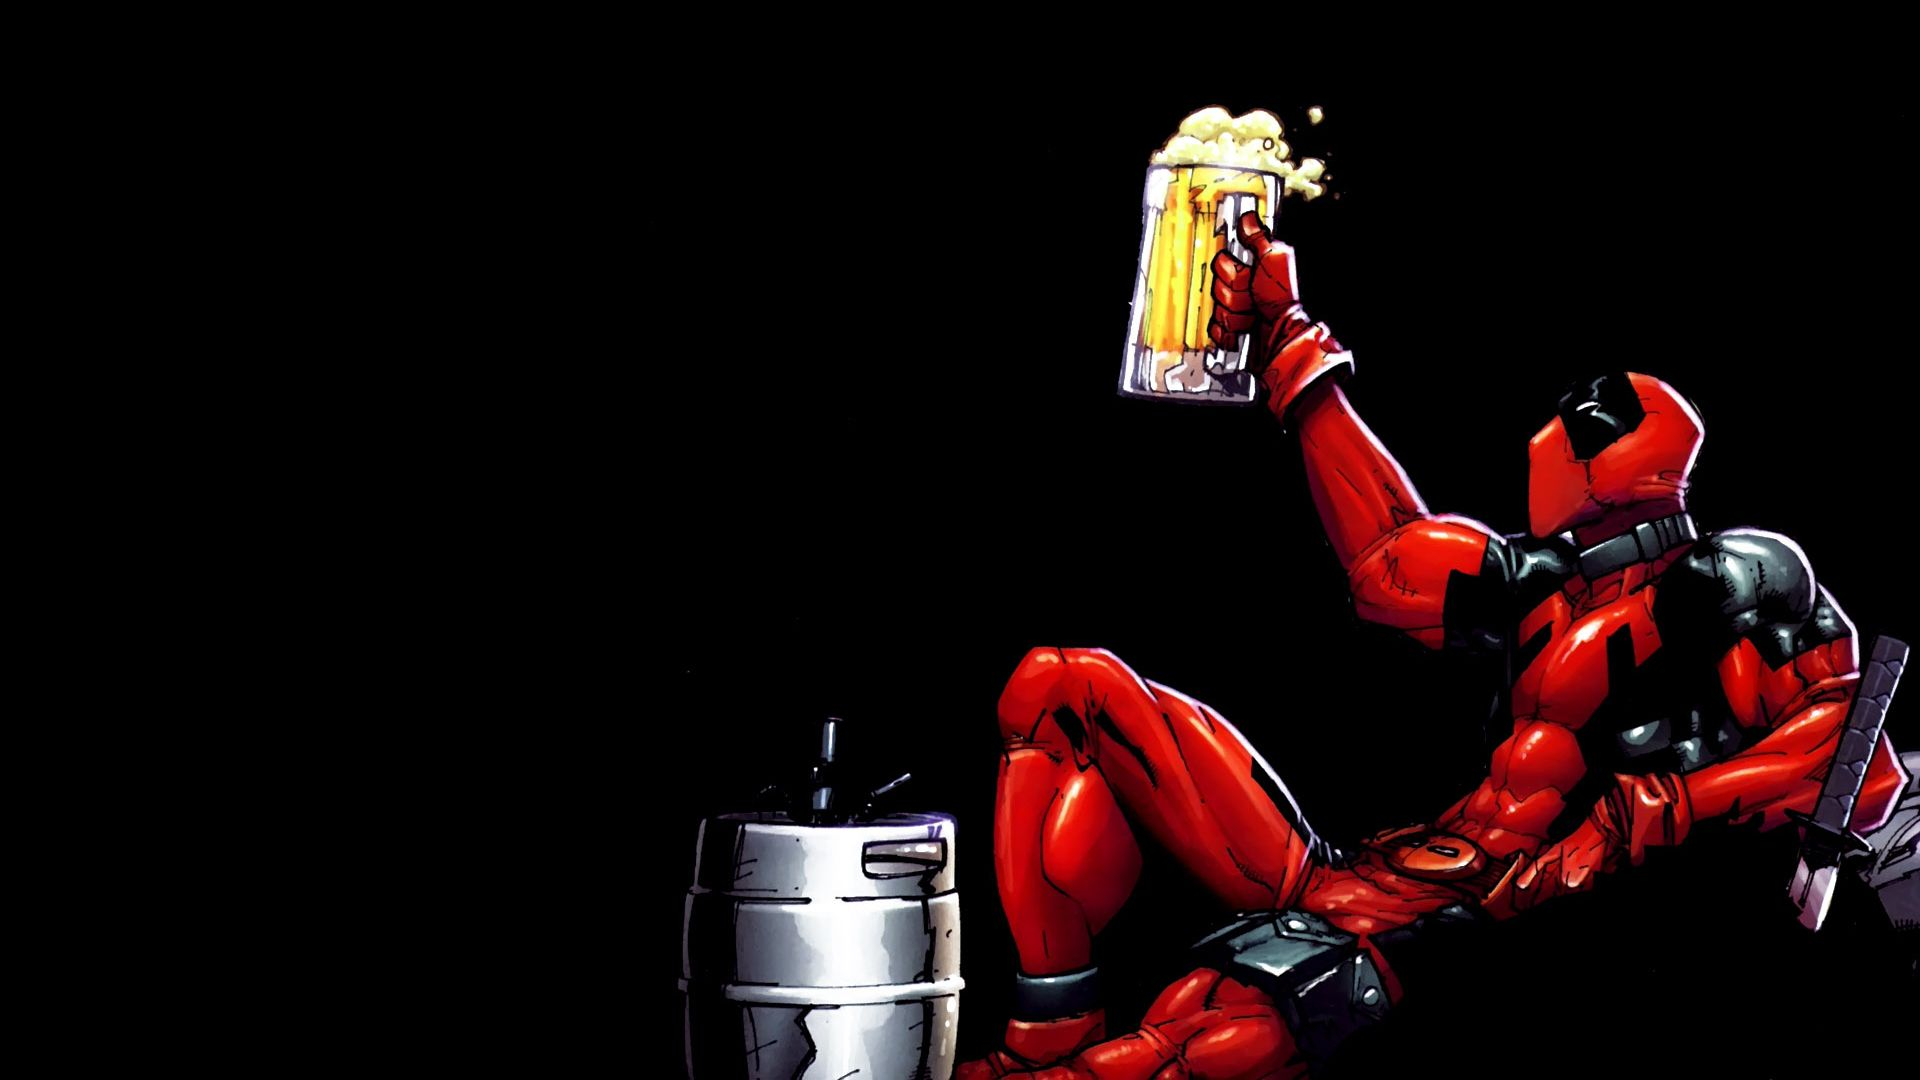 Deadpool Funny Deadpool Wallpaper Deadpool Hd Wallpaper Deadpool Live Wallpaper